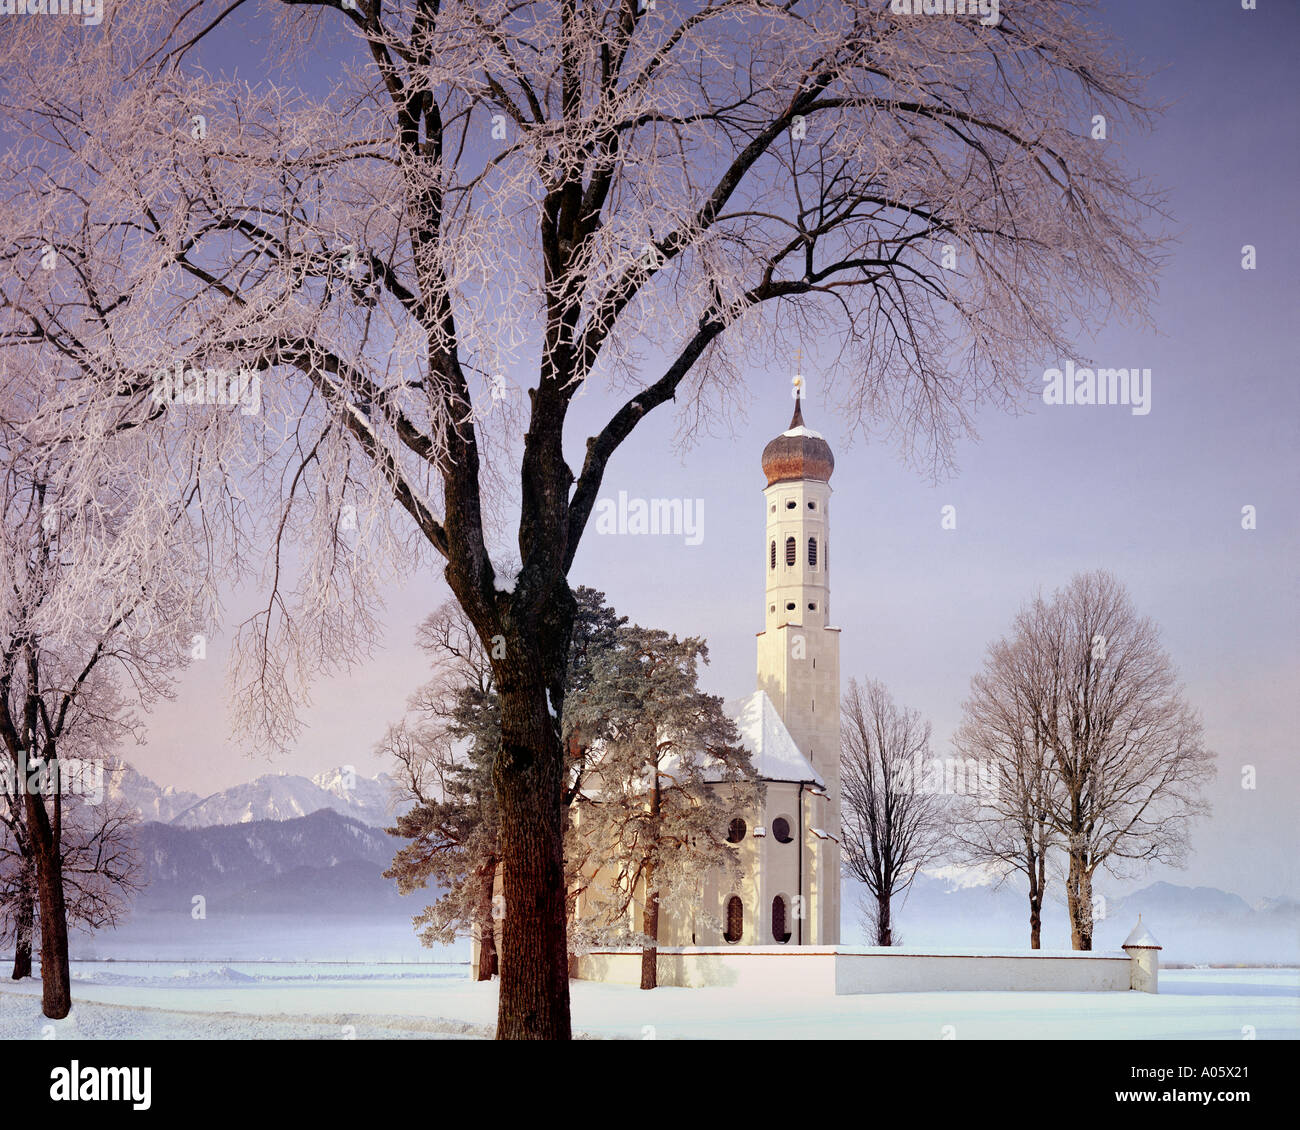 DE - BAVARIA: St Coloman near Schwangau - Stock Image